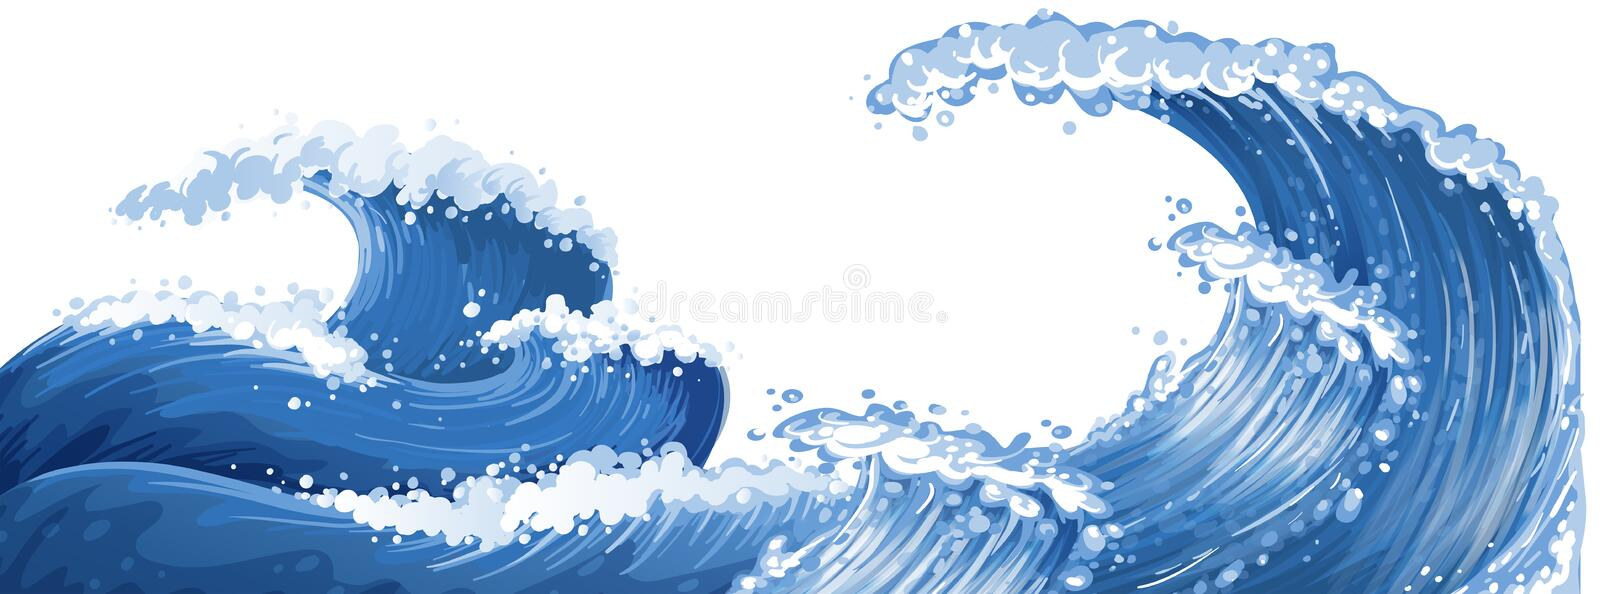 Big waves in the ocean royalty free illustration